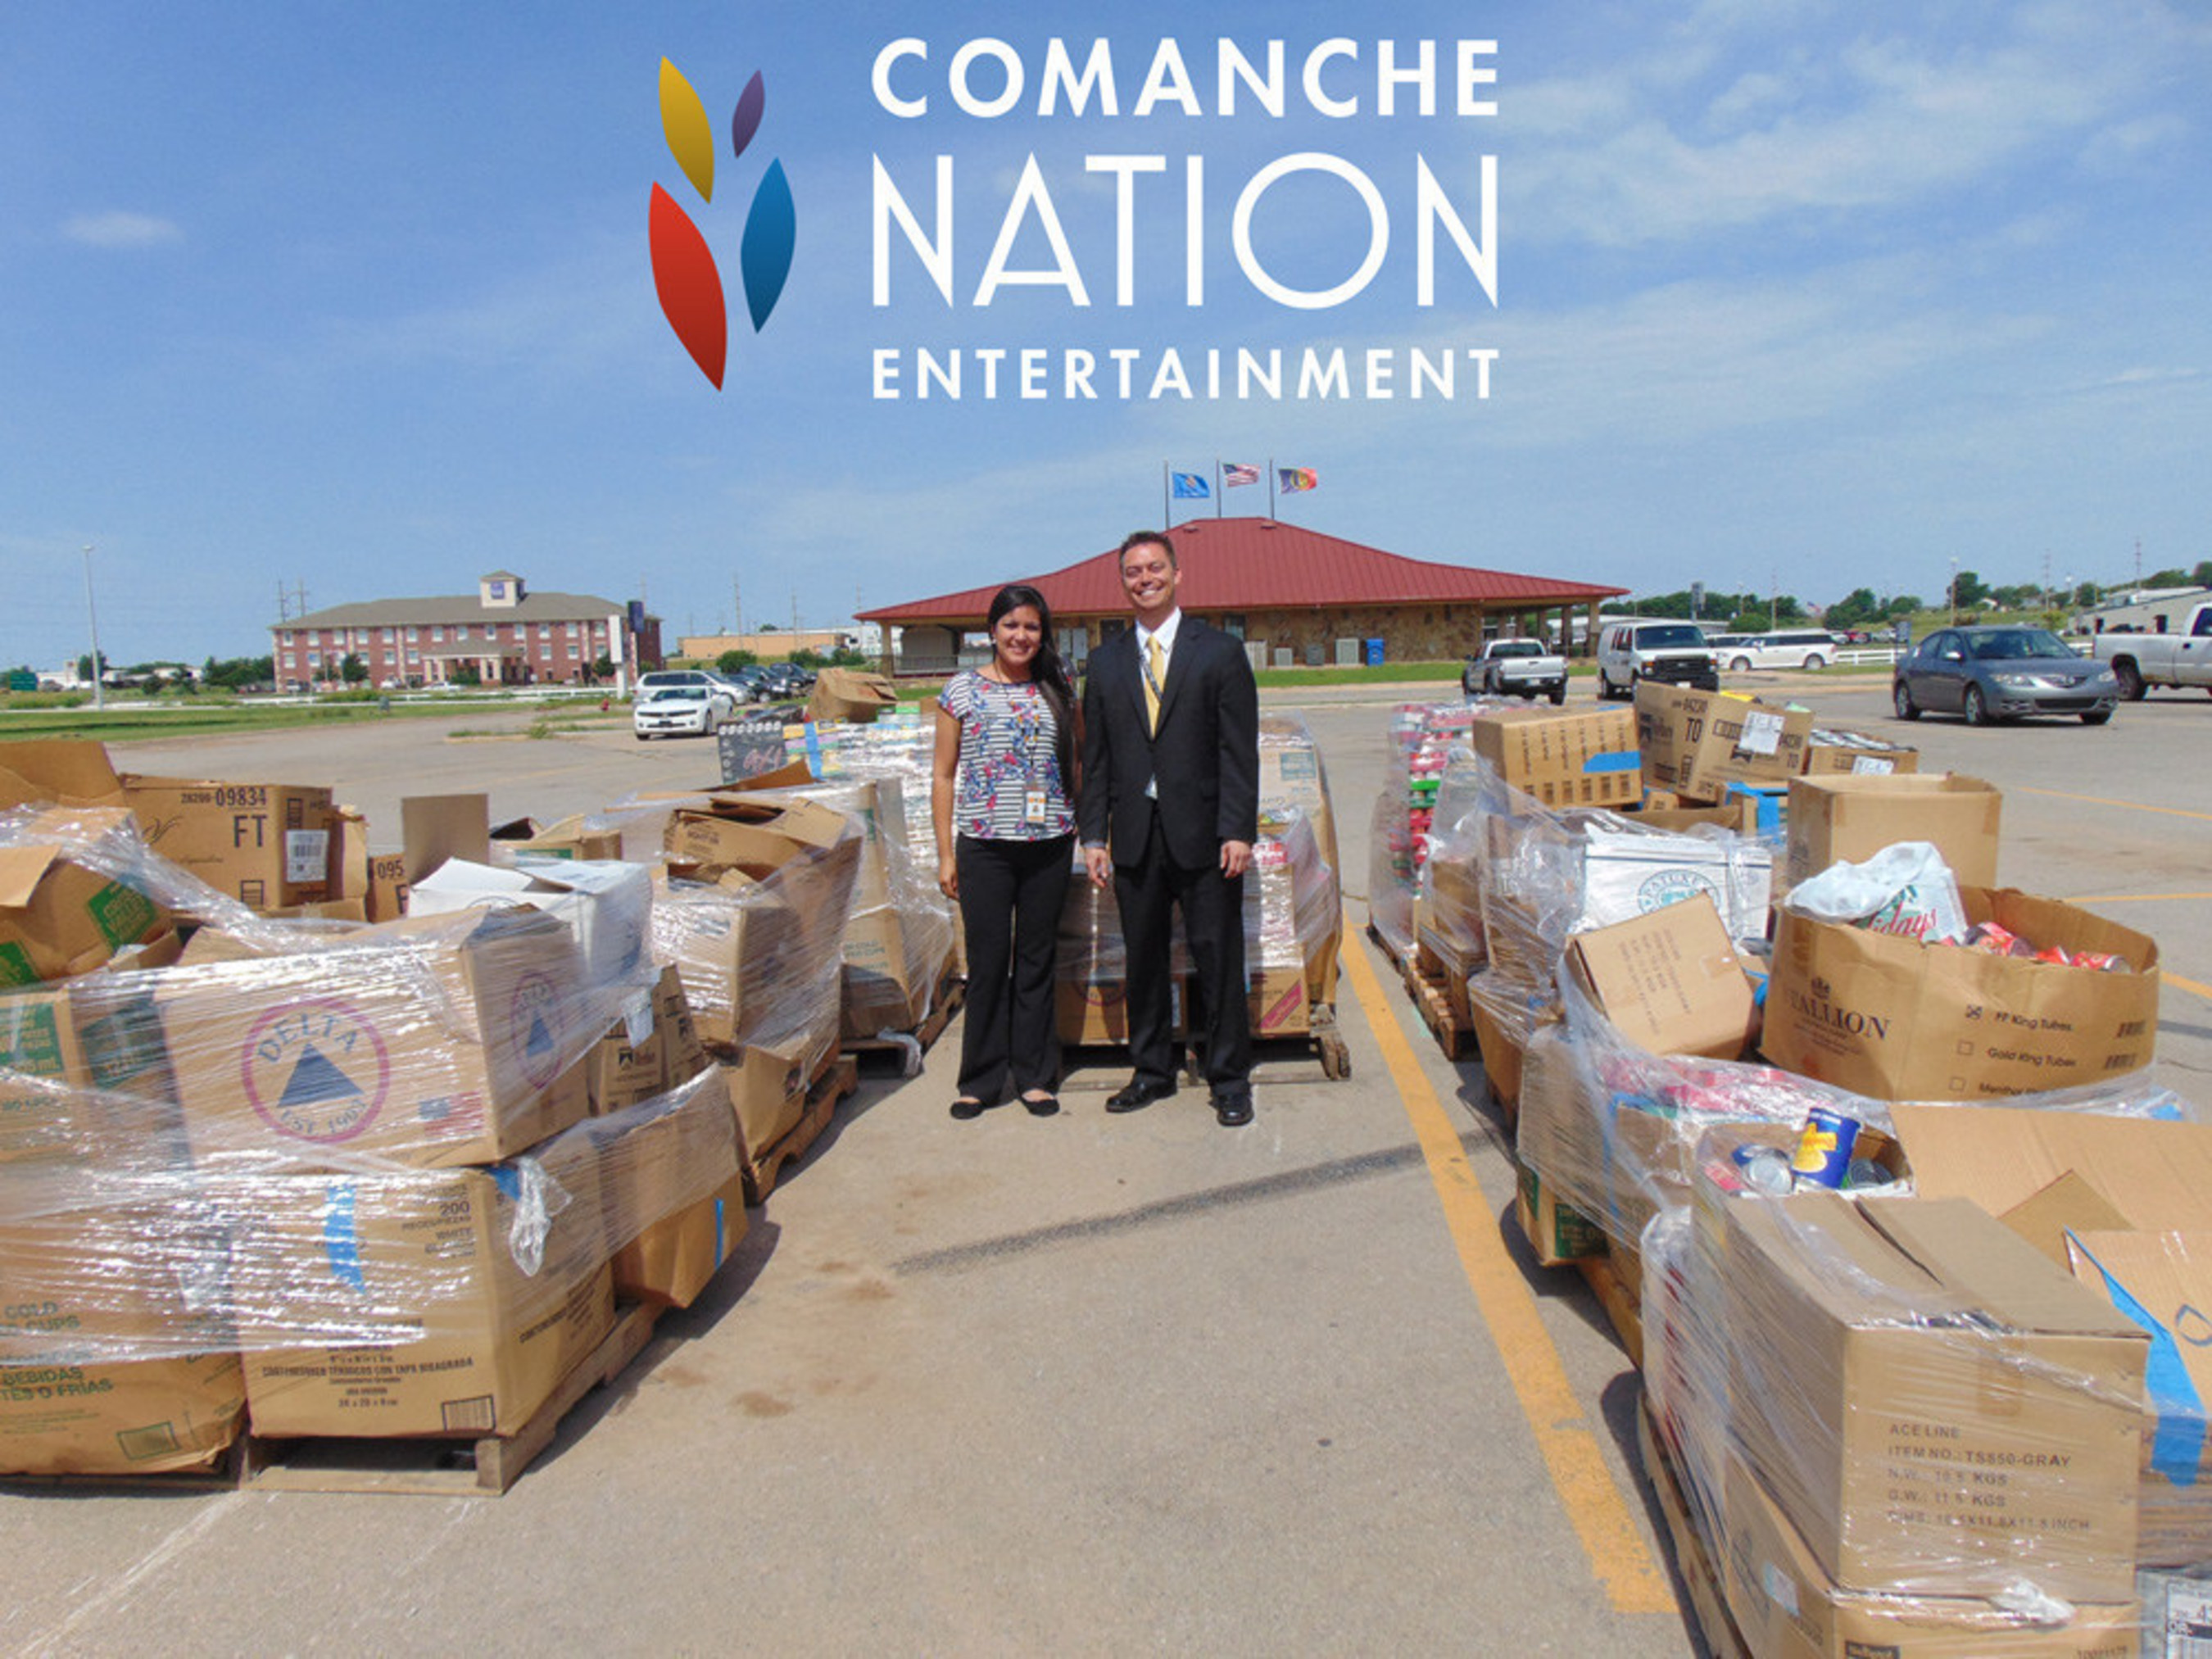 The food drive organized by Comanche Nation Entertainment Oklahoma casinos delivered 66,591 cans of food to victims of recent floods.